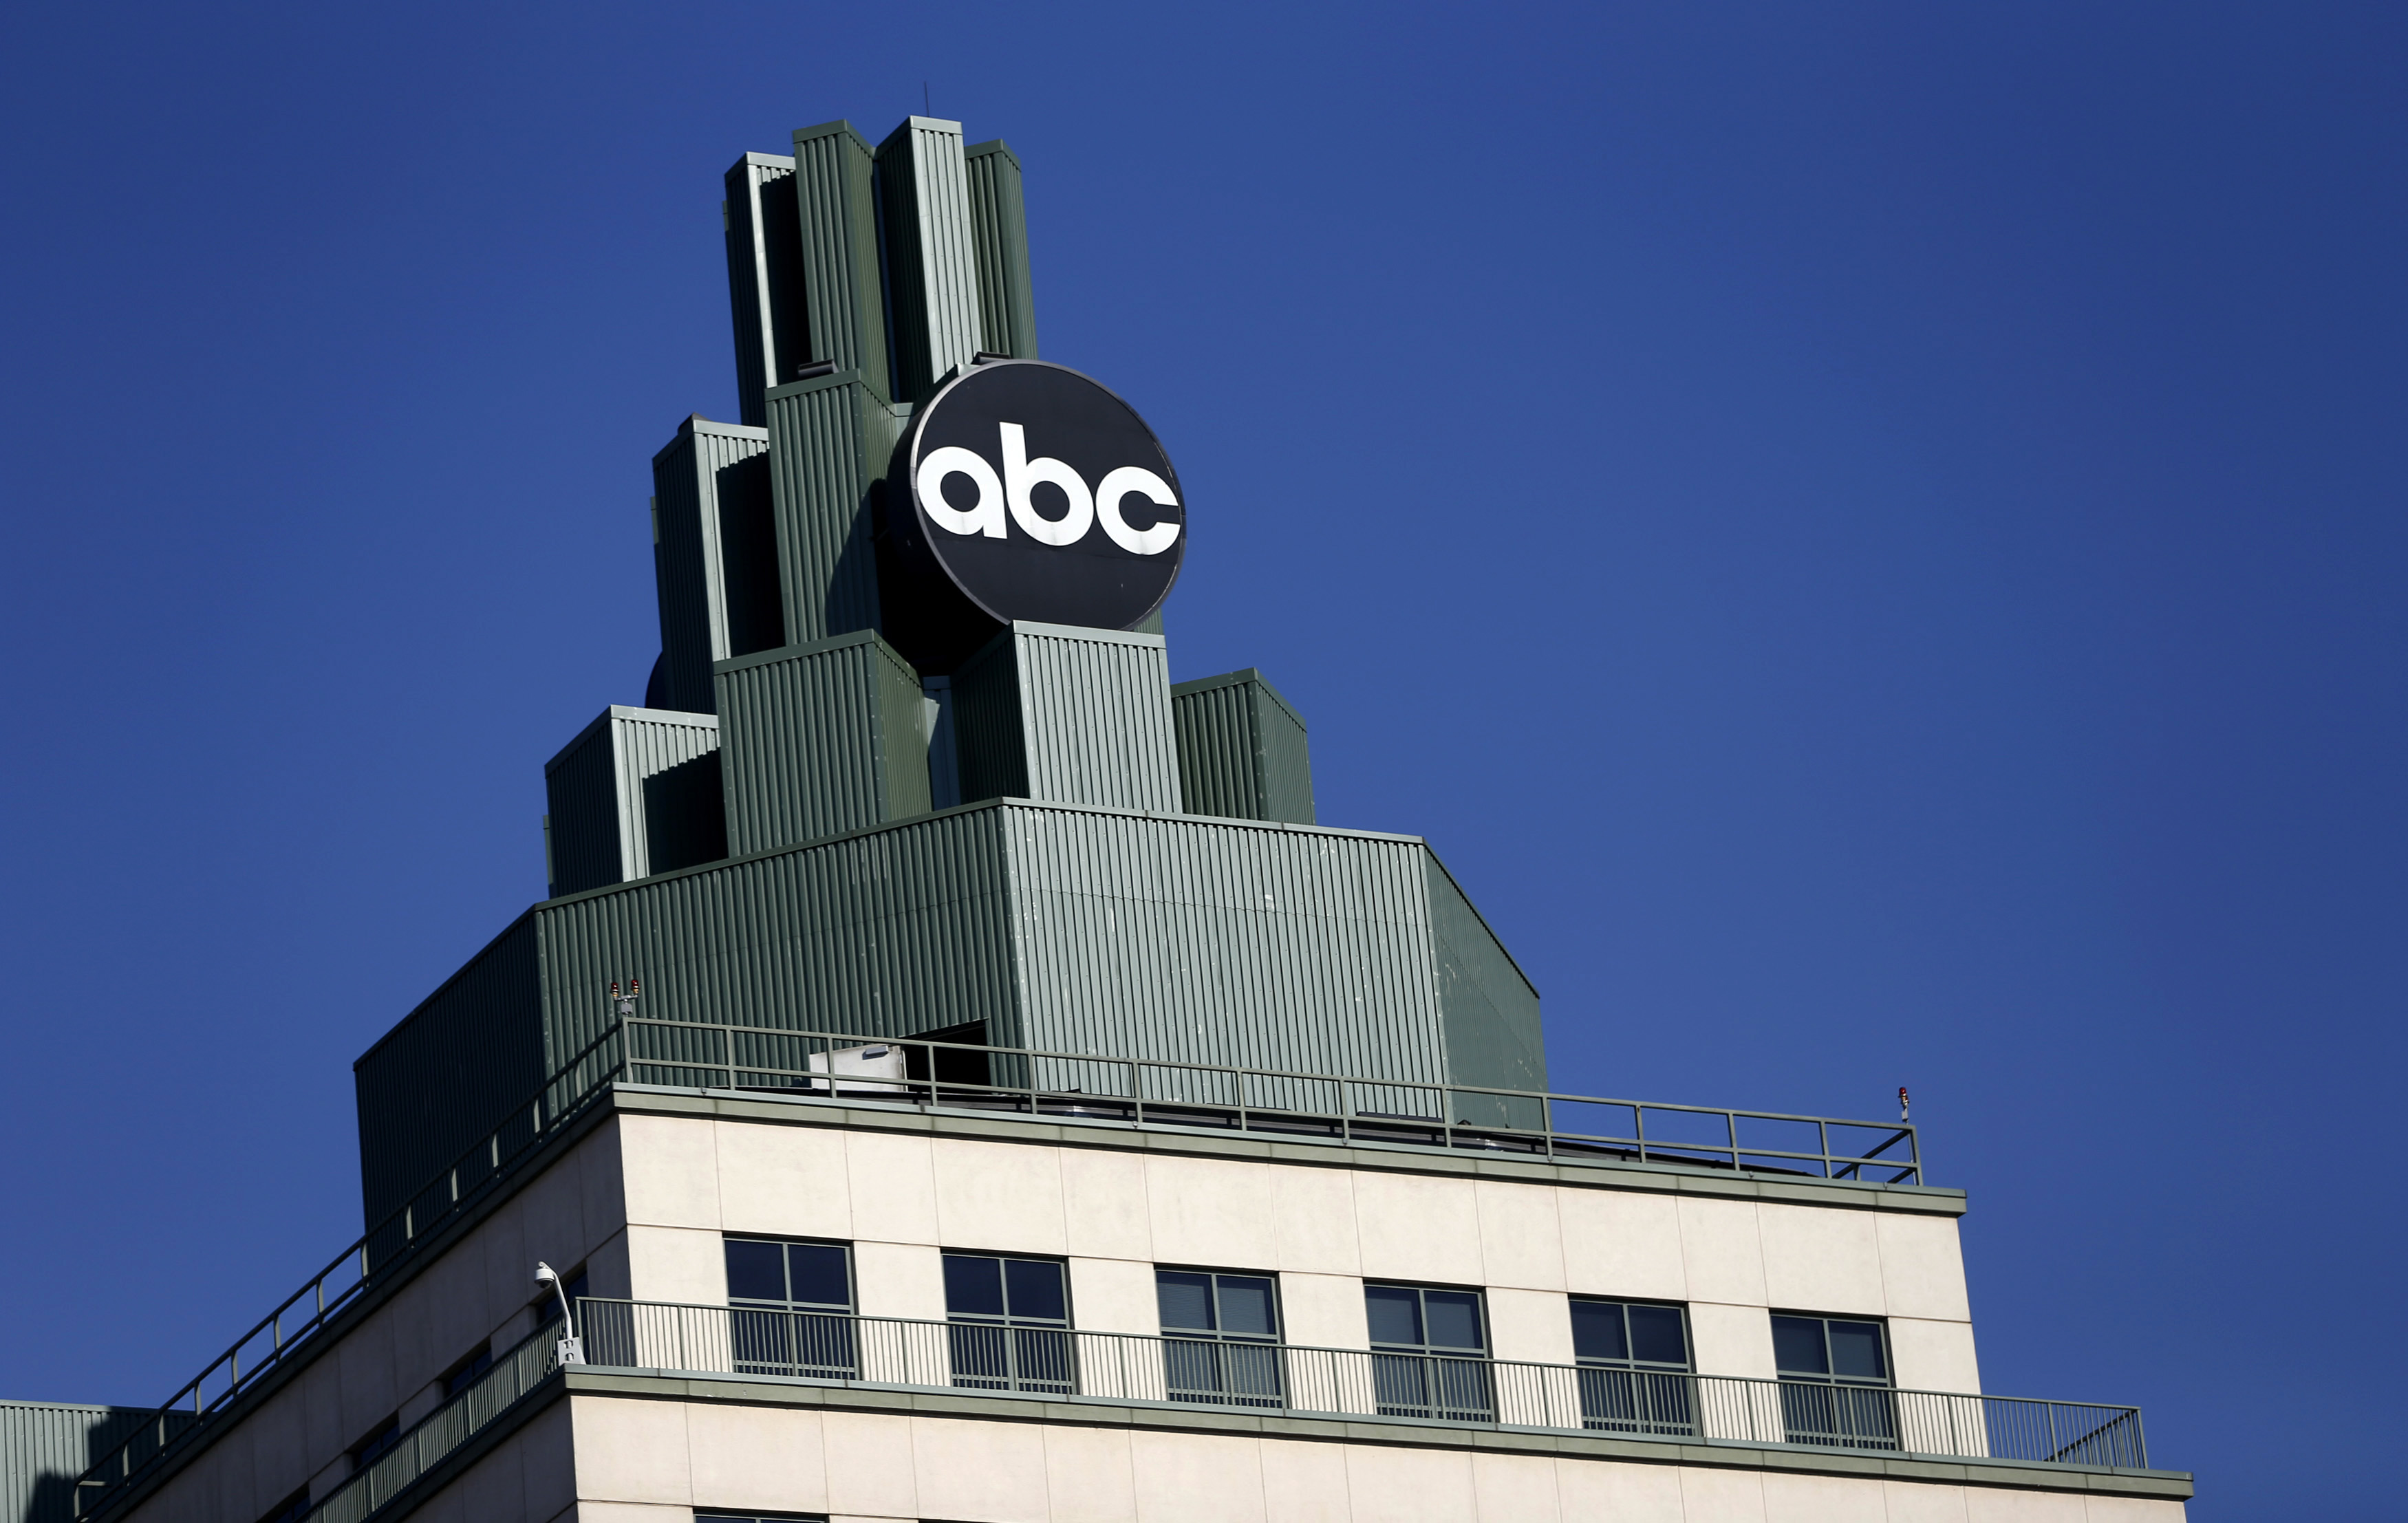 A logo for ABC is pictured atop a building in Burbank, California February 5, 2014.  REUTERS/Mario Anzuoni  (UNITED STATES - Tags: ENTERTAINMENT BUSINESS)